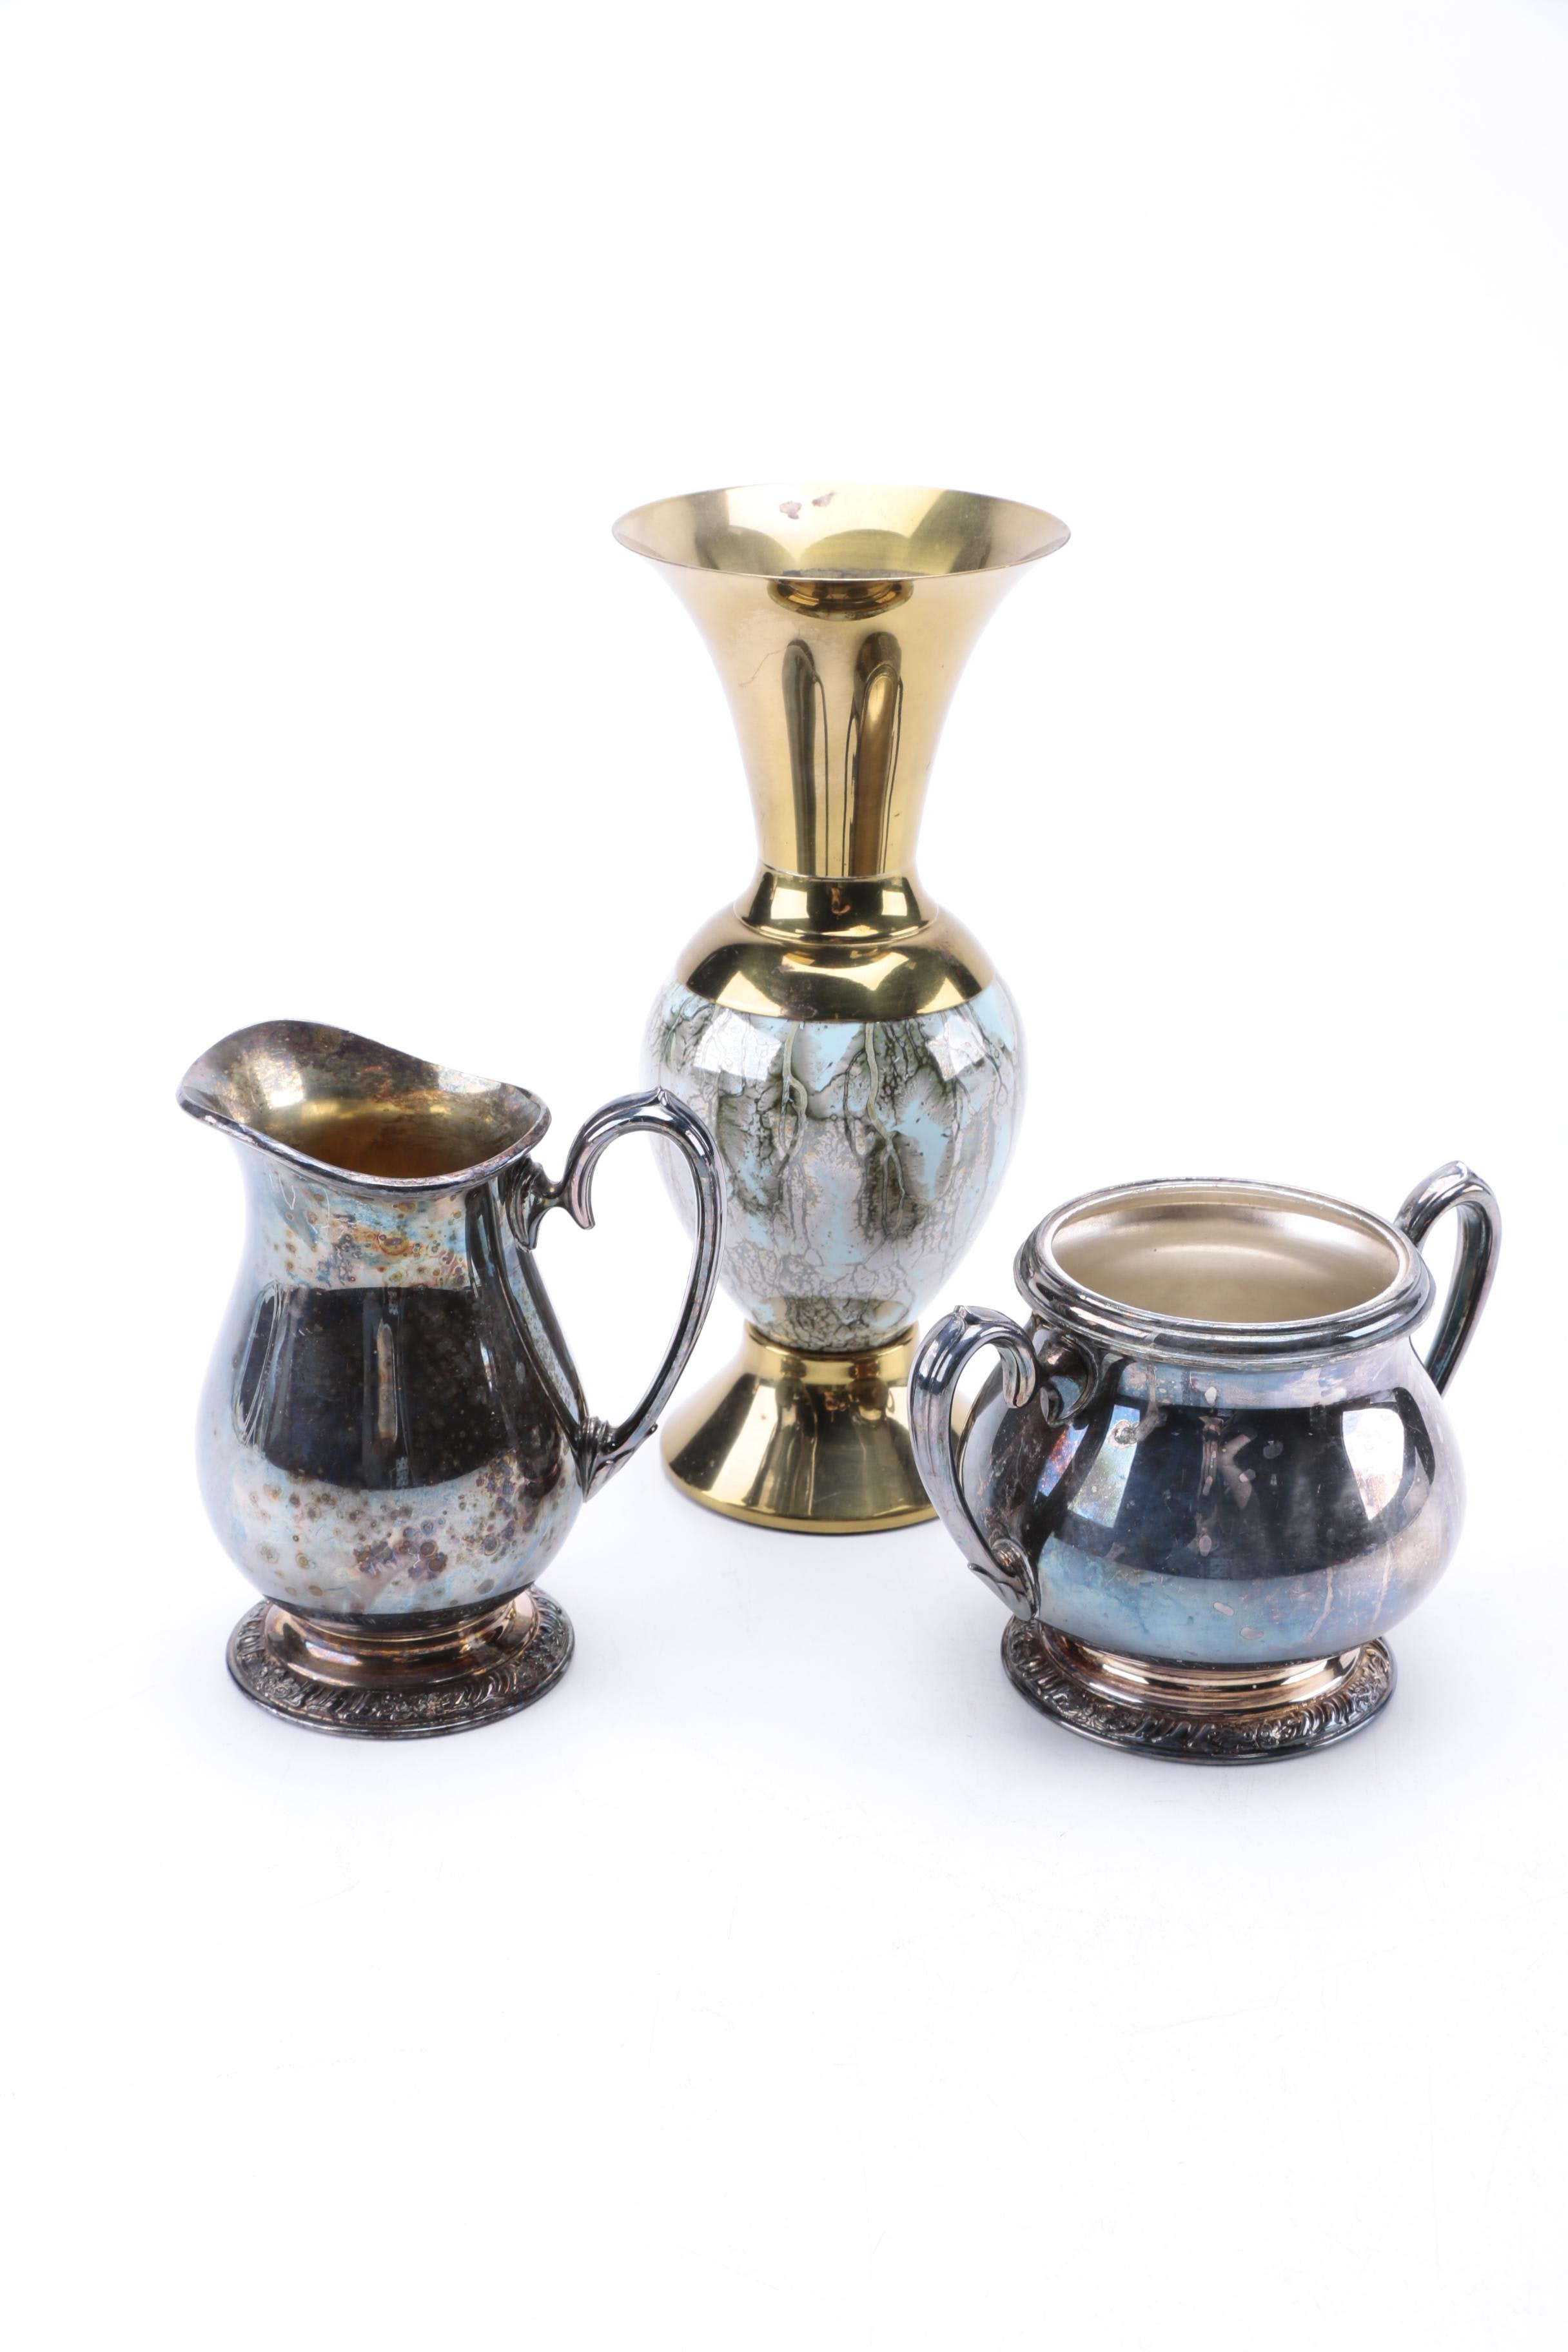 Oneida Silver Plate Sugar and Creamer with Vase